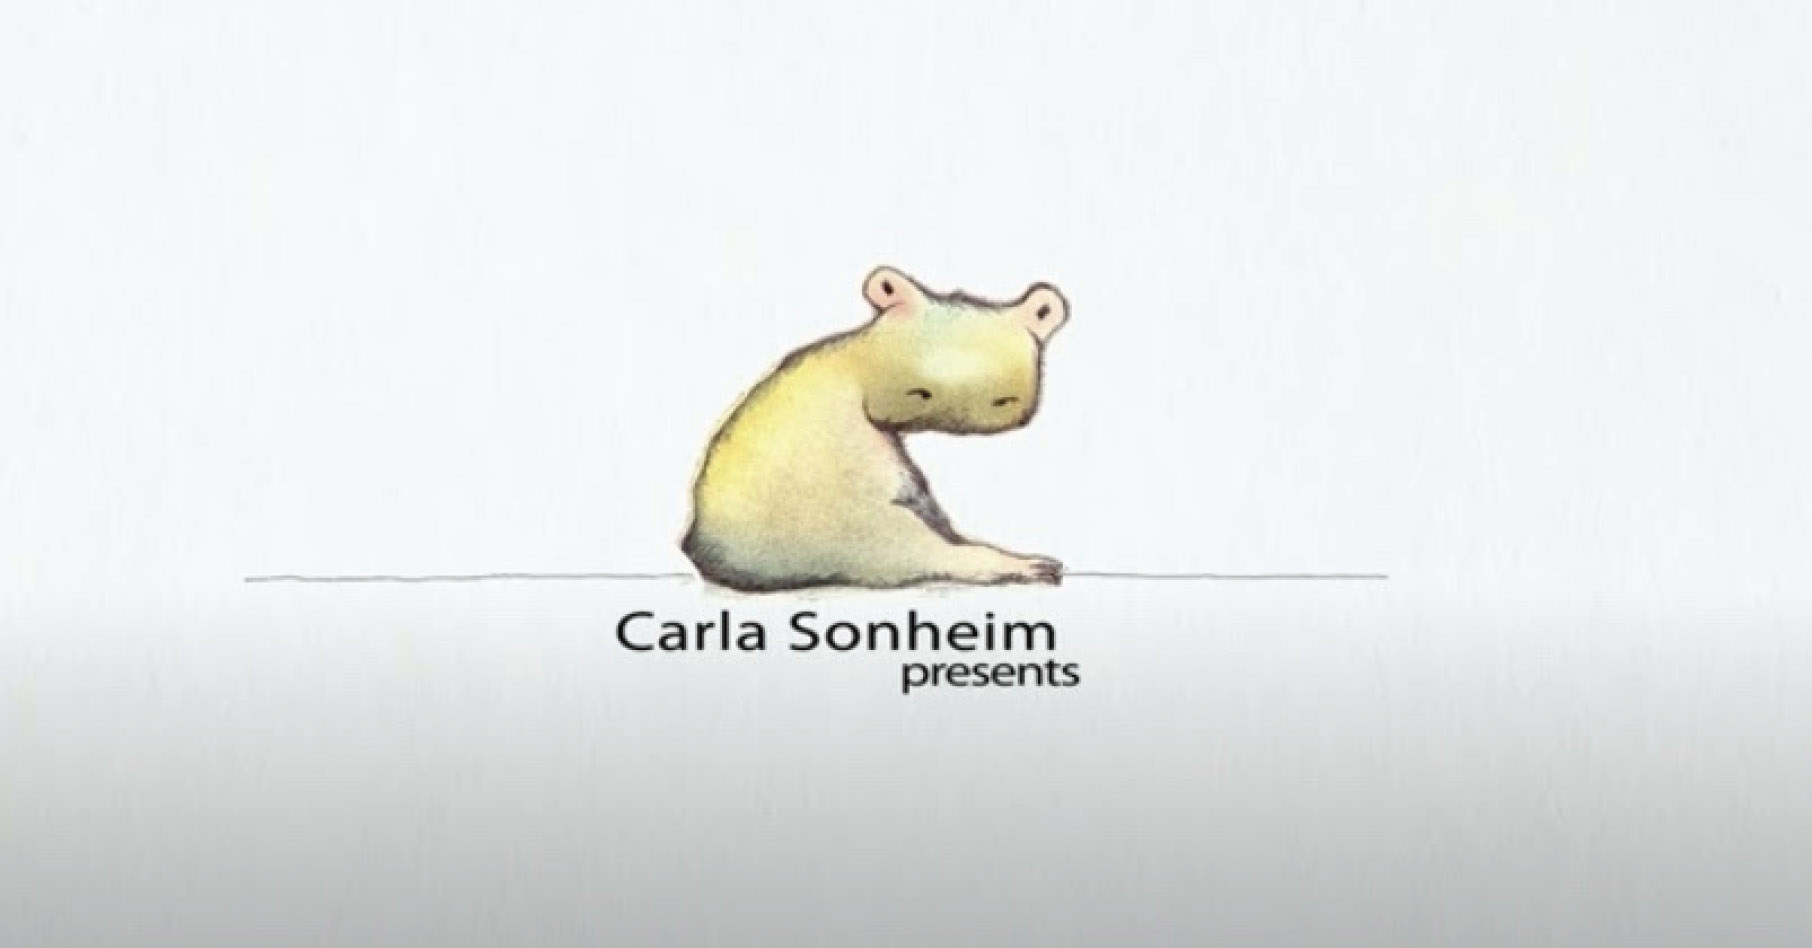 Carla Sonheim presents